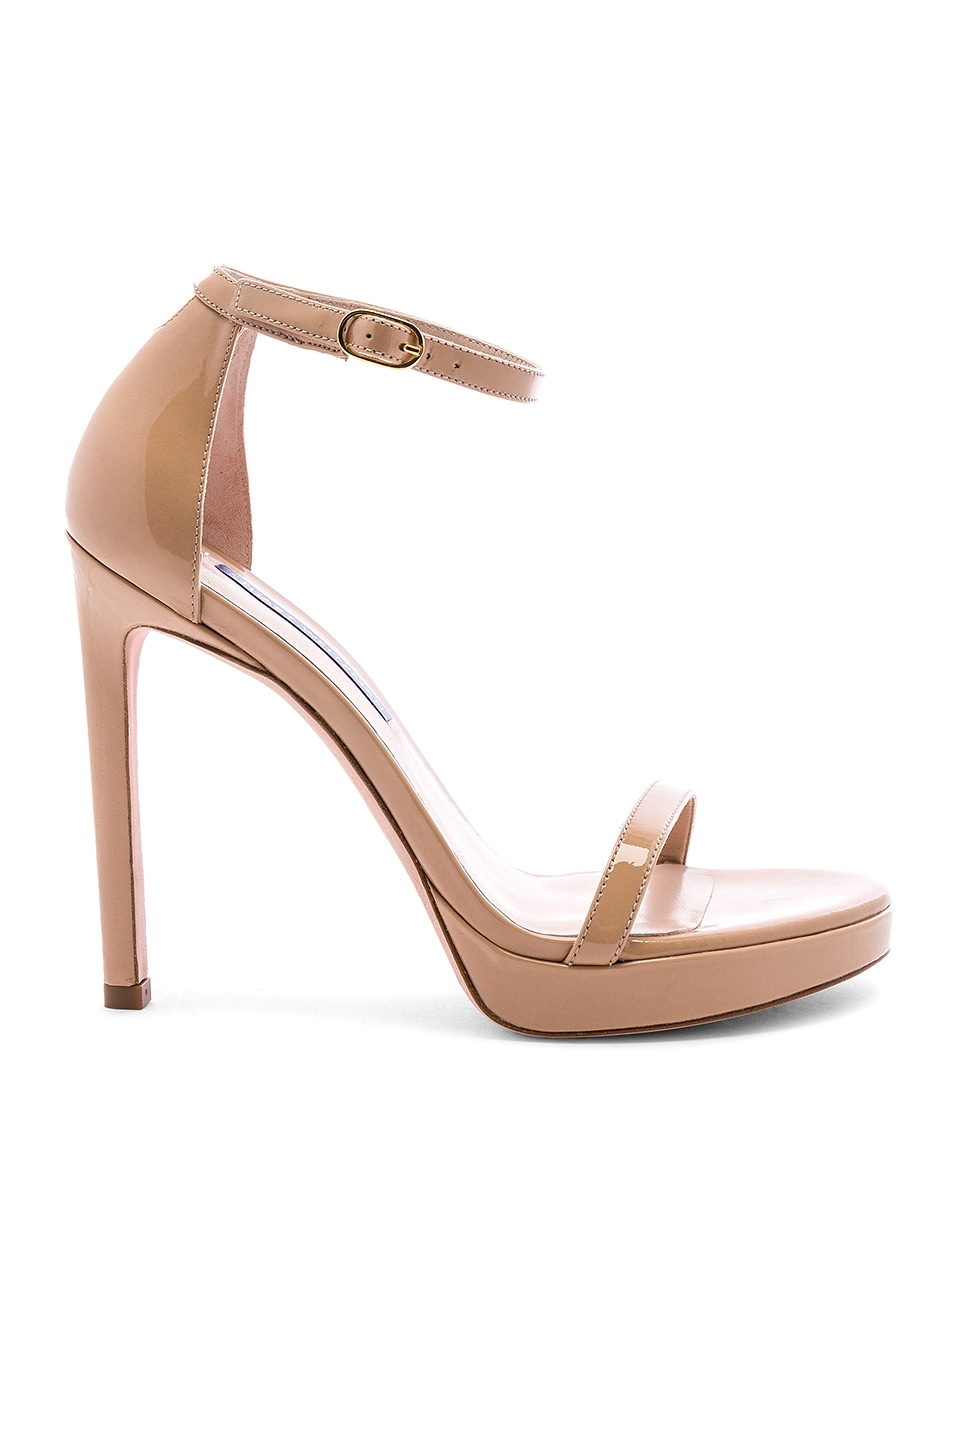 Stuart Weitzman ESCARPINS NUDIST DISCO